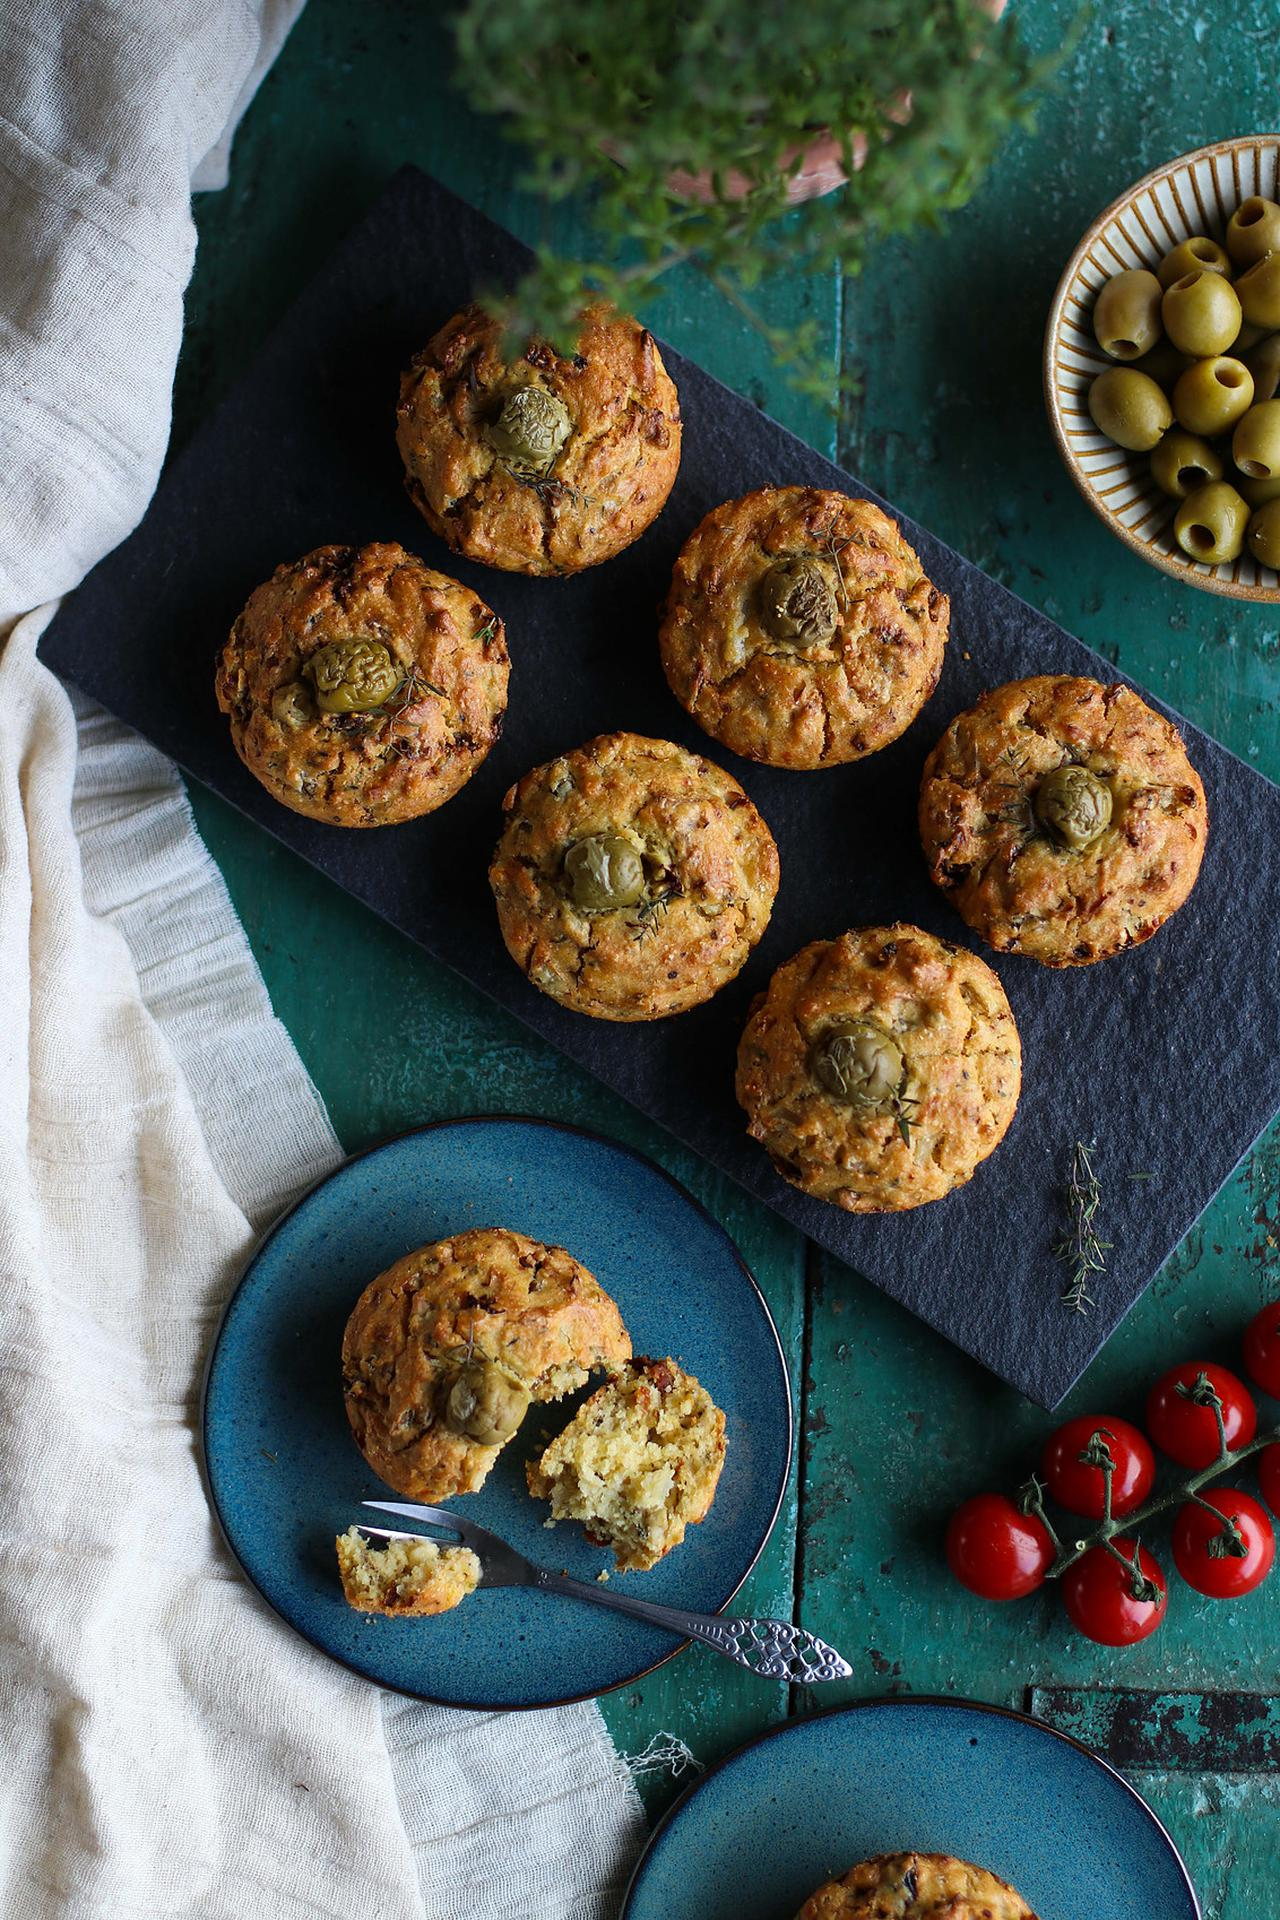 Main image of Savoury Sun-Dried Tomato & Olive Muffins